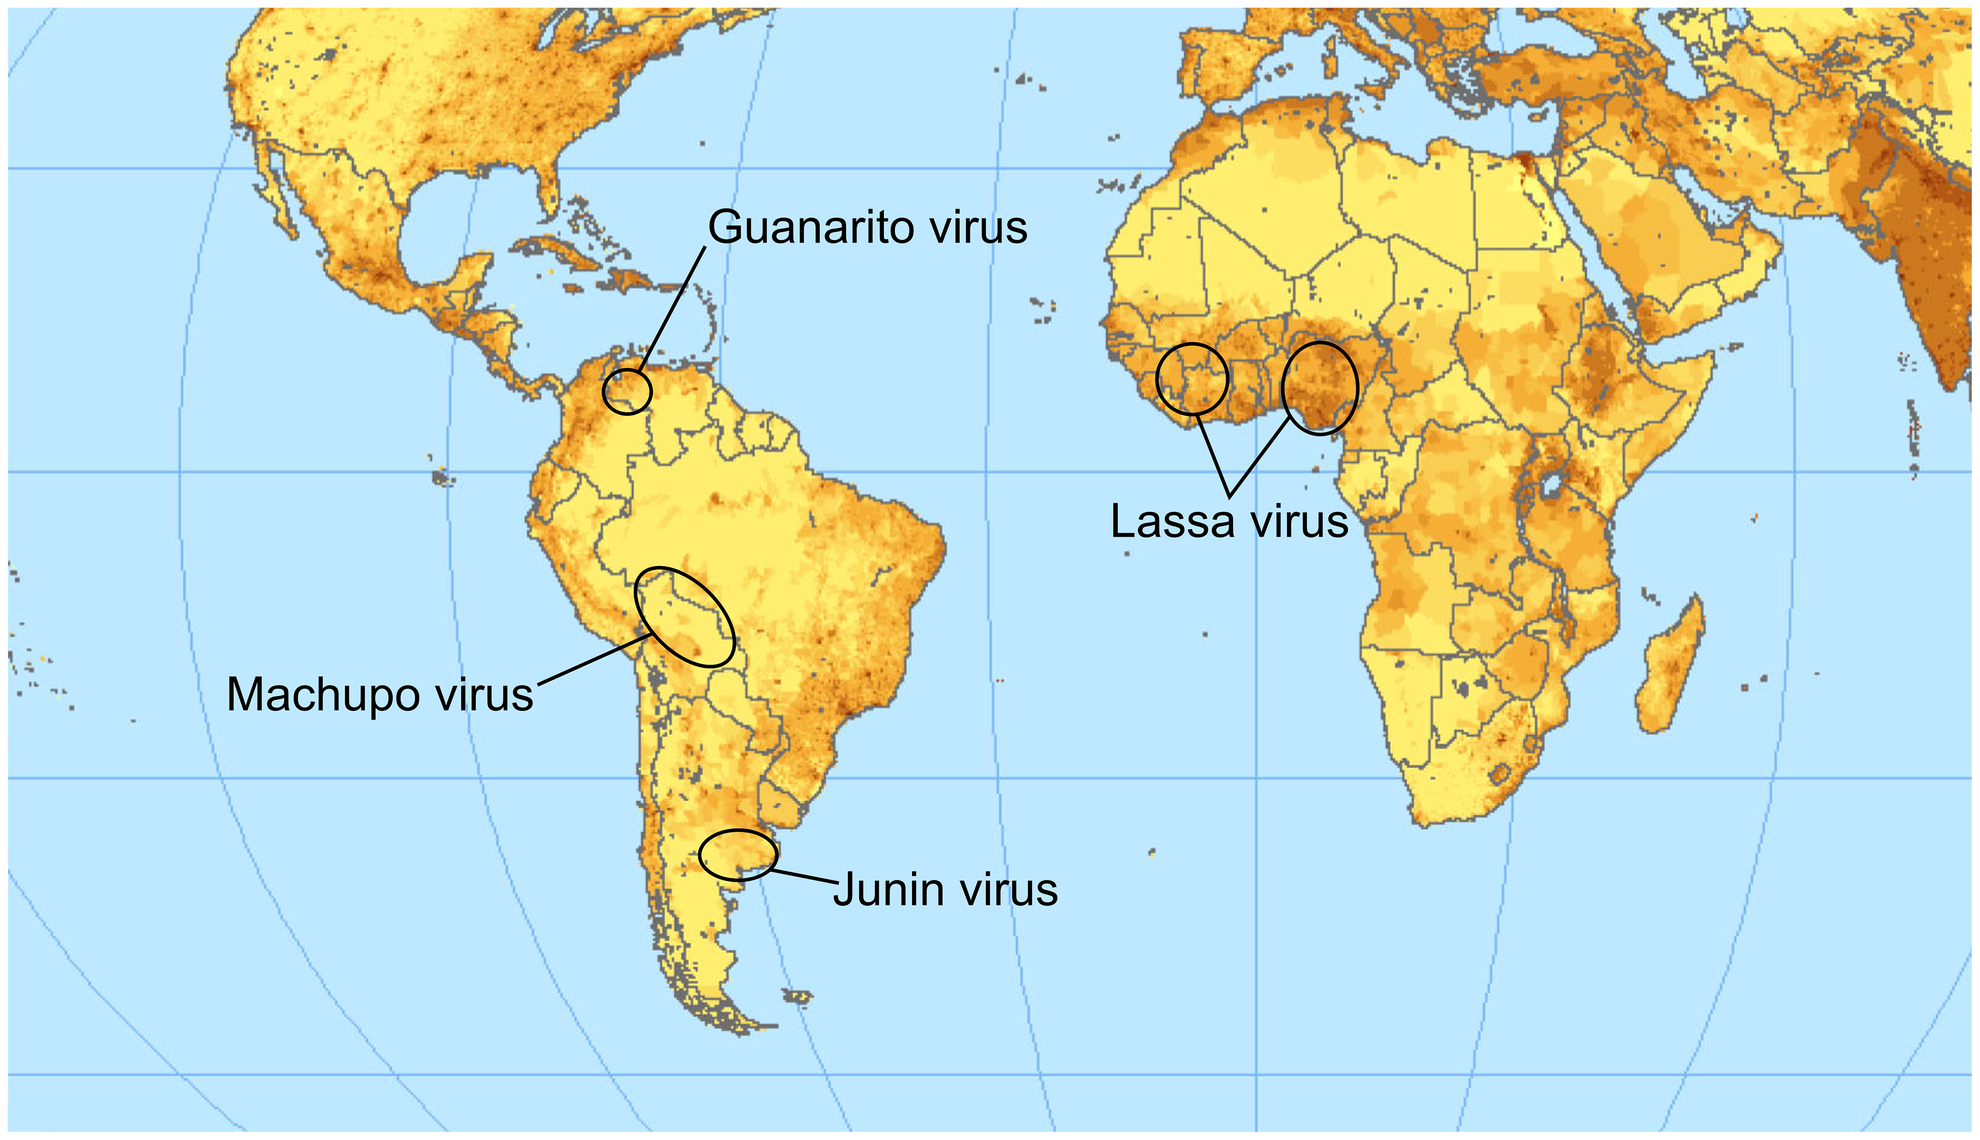 Endemic regions for the pathogenic arenaviruses mentioned in the text.